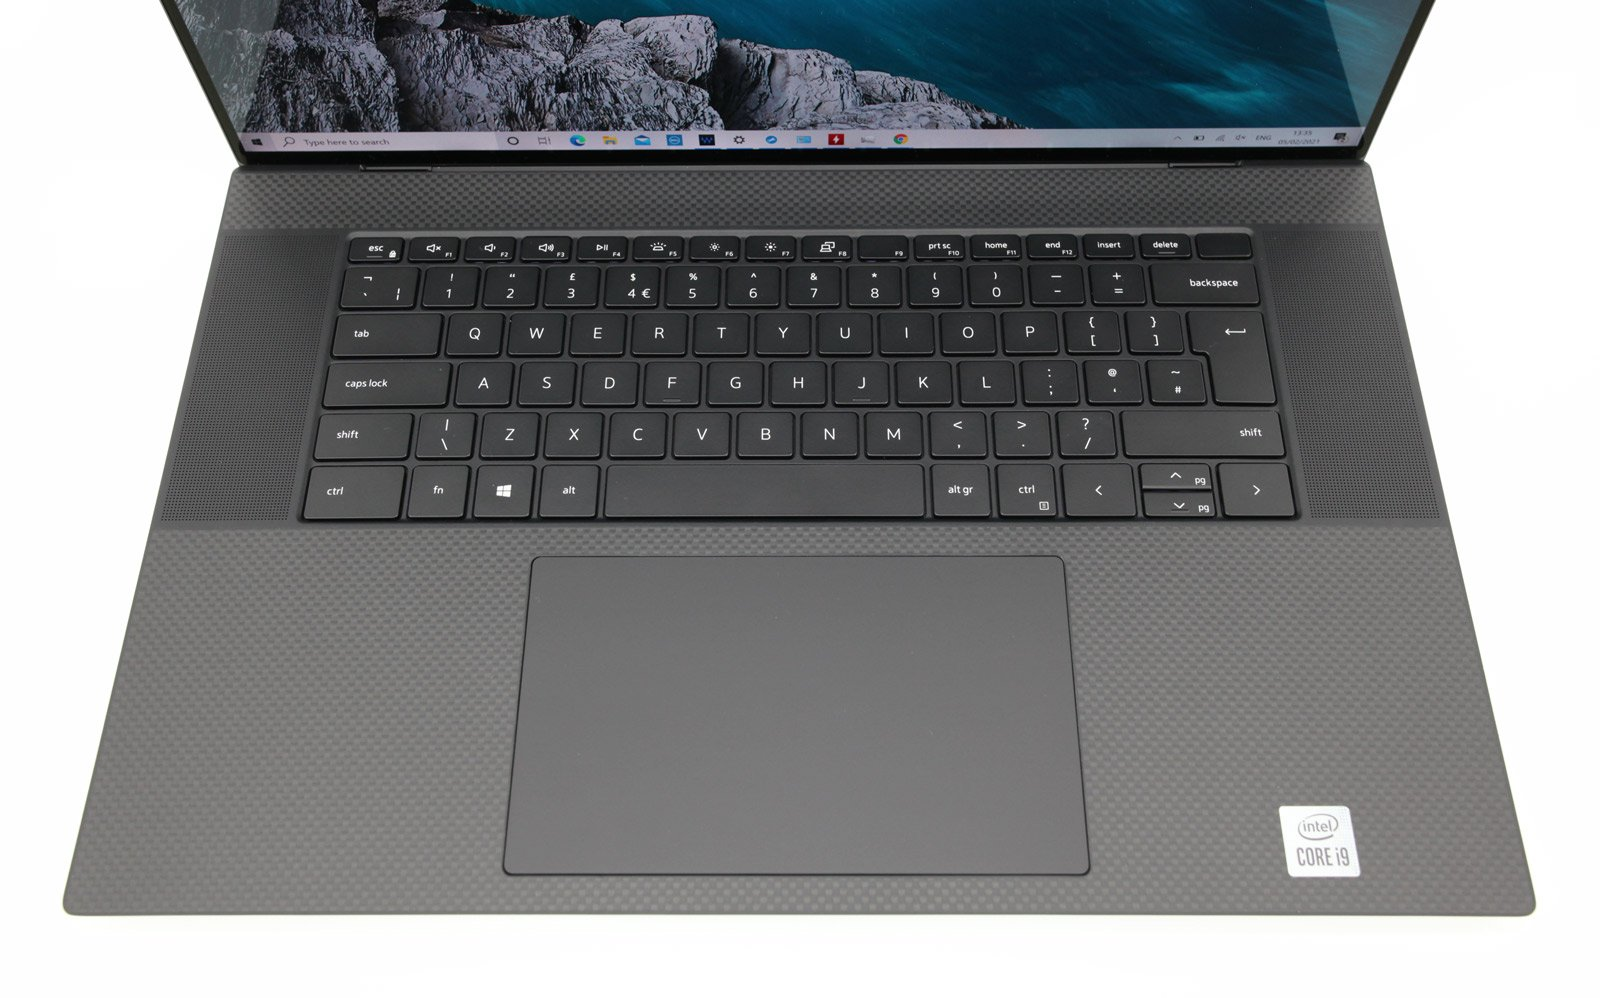 Dell XPS 17 9700 4K Touch Laptop: Core i9 NVIDIA 16GB RAM 1TB SSD Warranty - CruiseTech